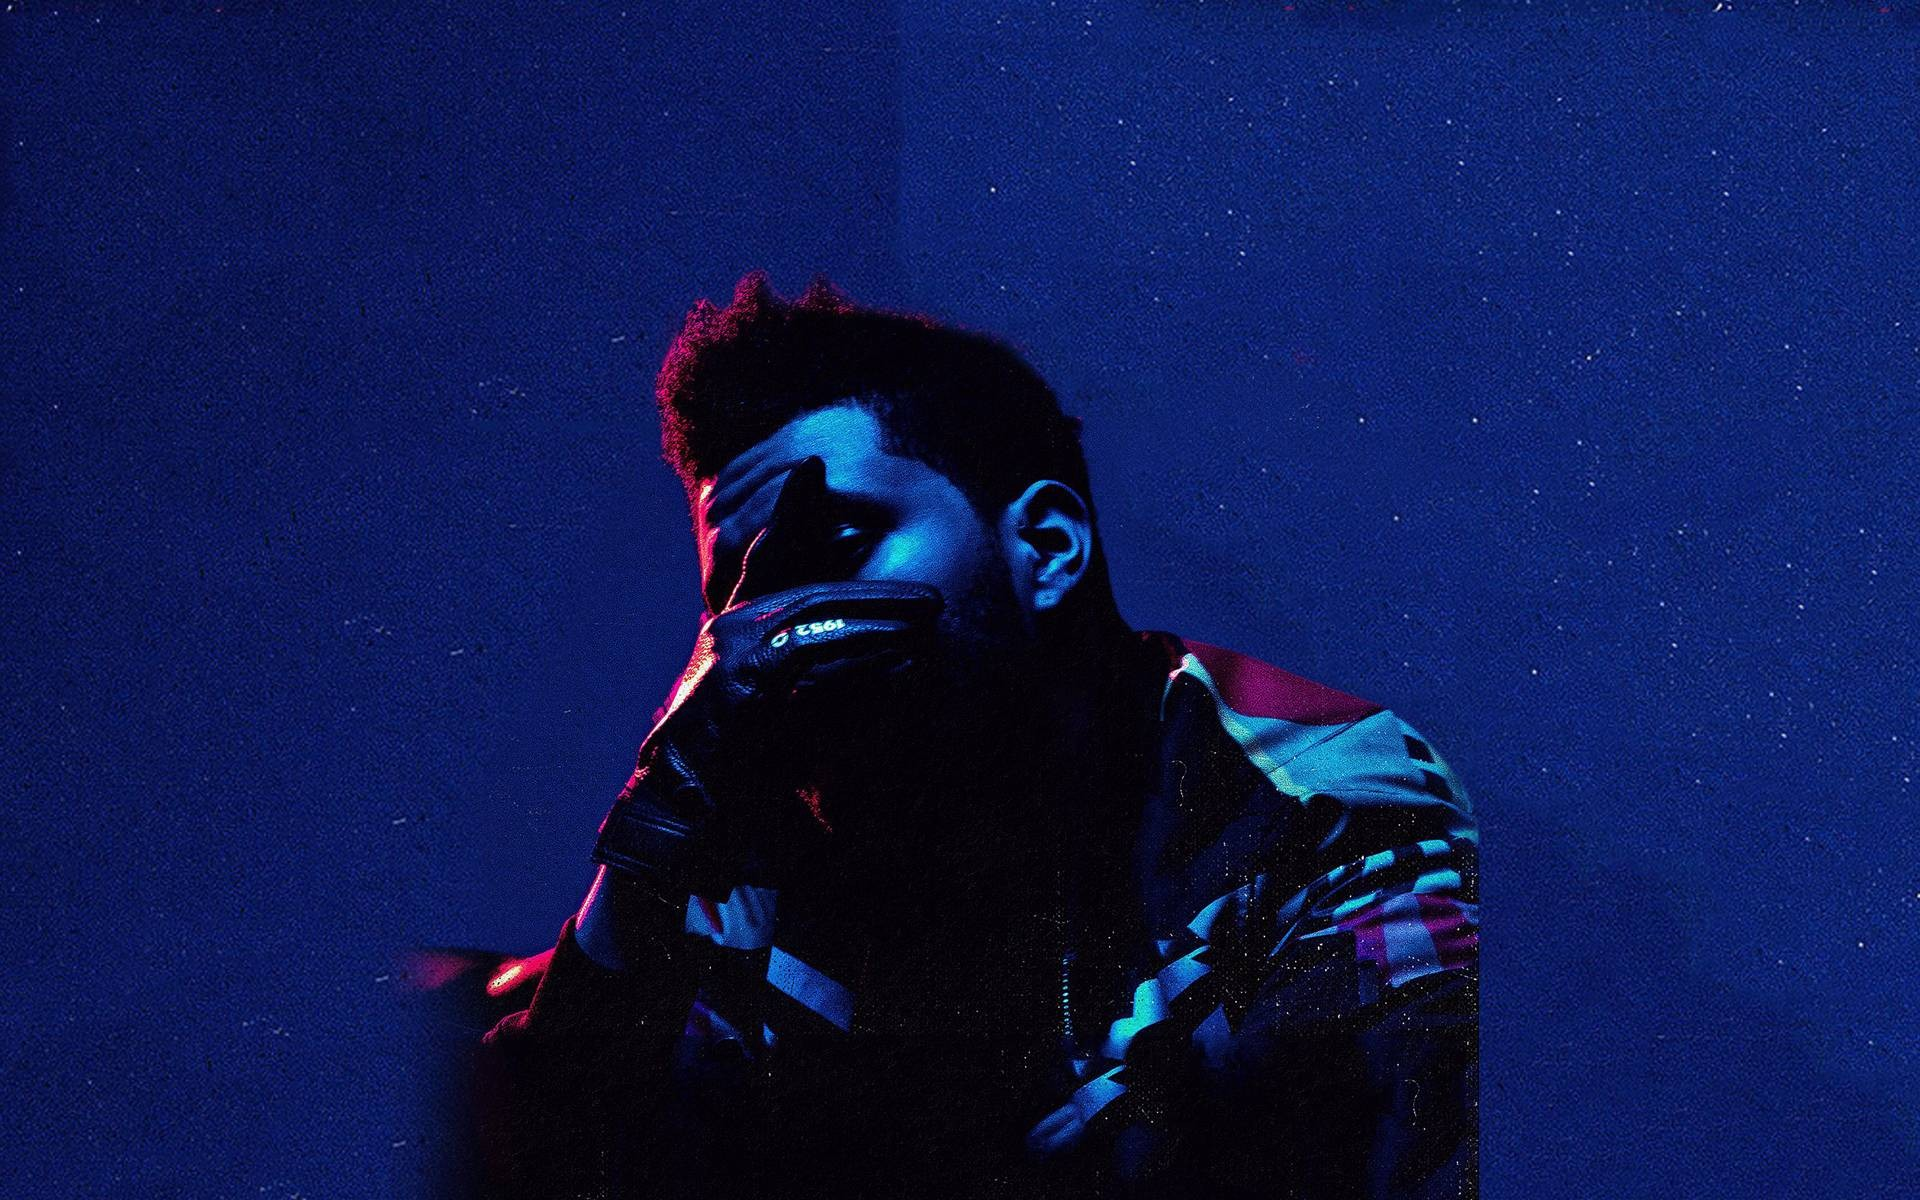 The Weeknd wallpaper ·① Download free stunning backgrounds ...